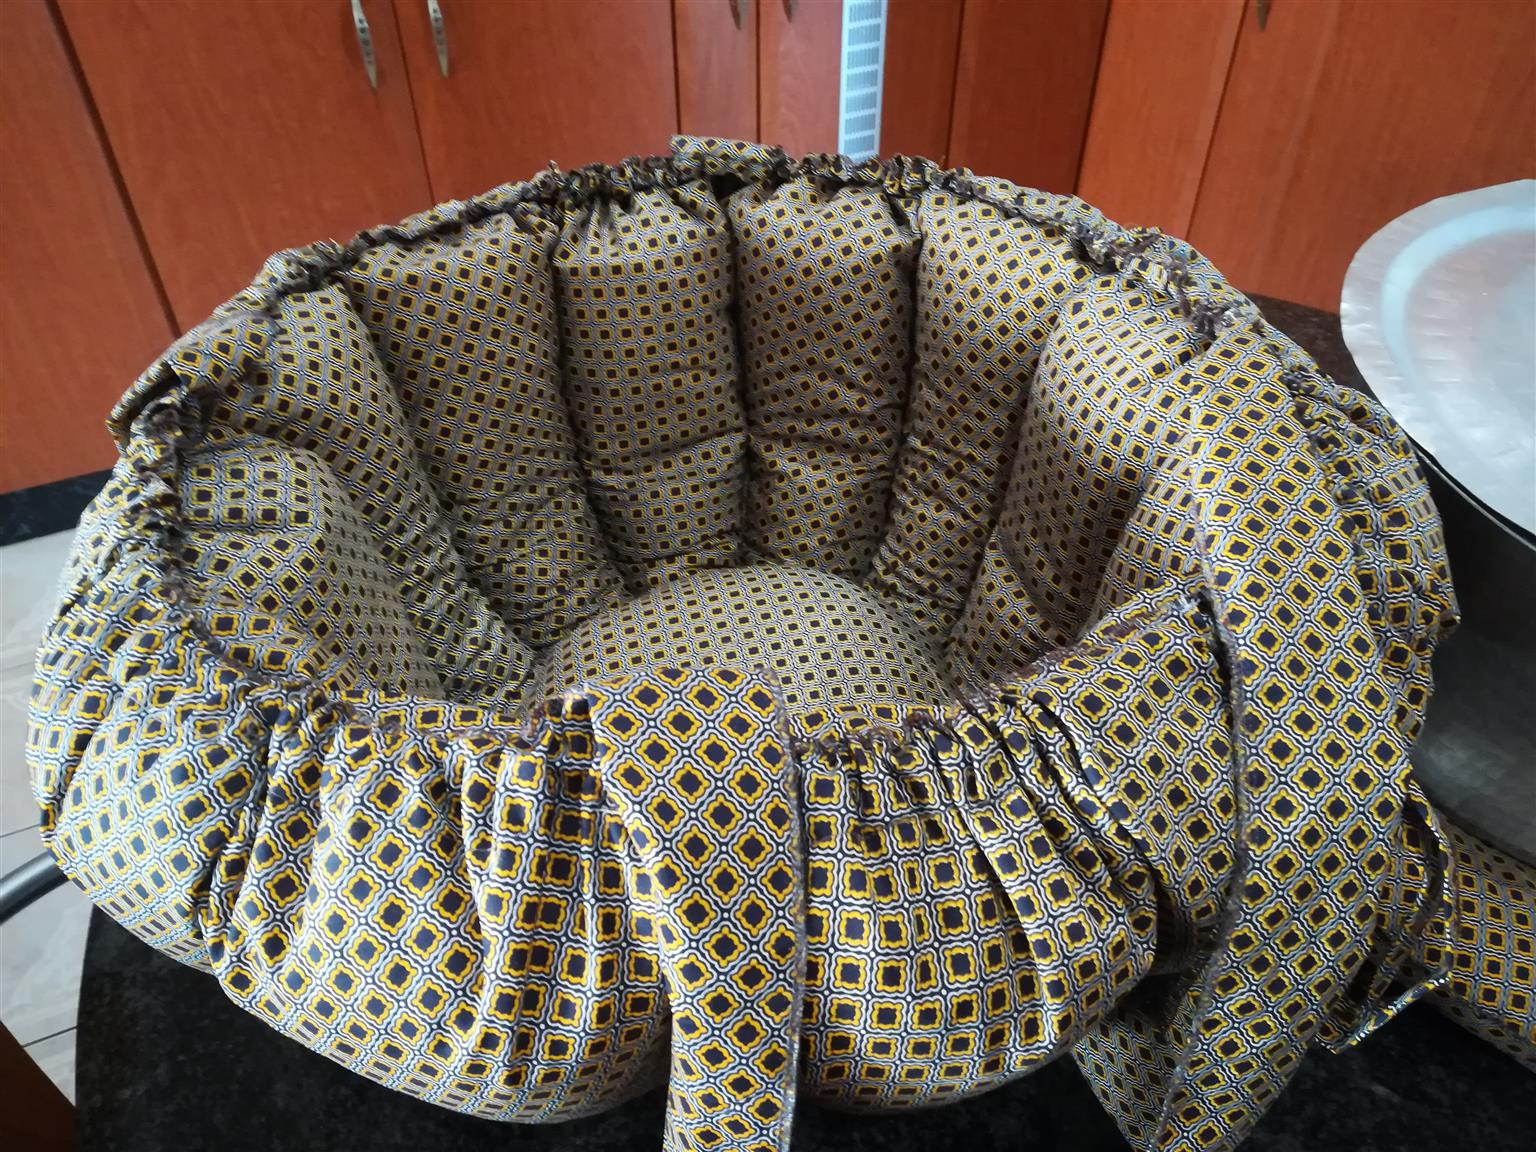 Cooking cushions /Food warmers